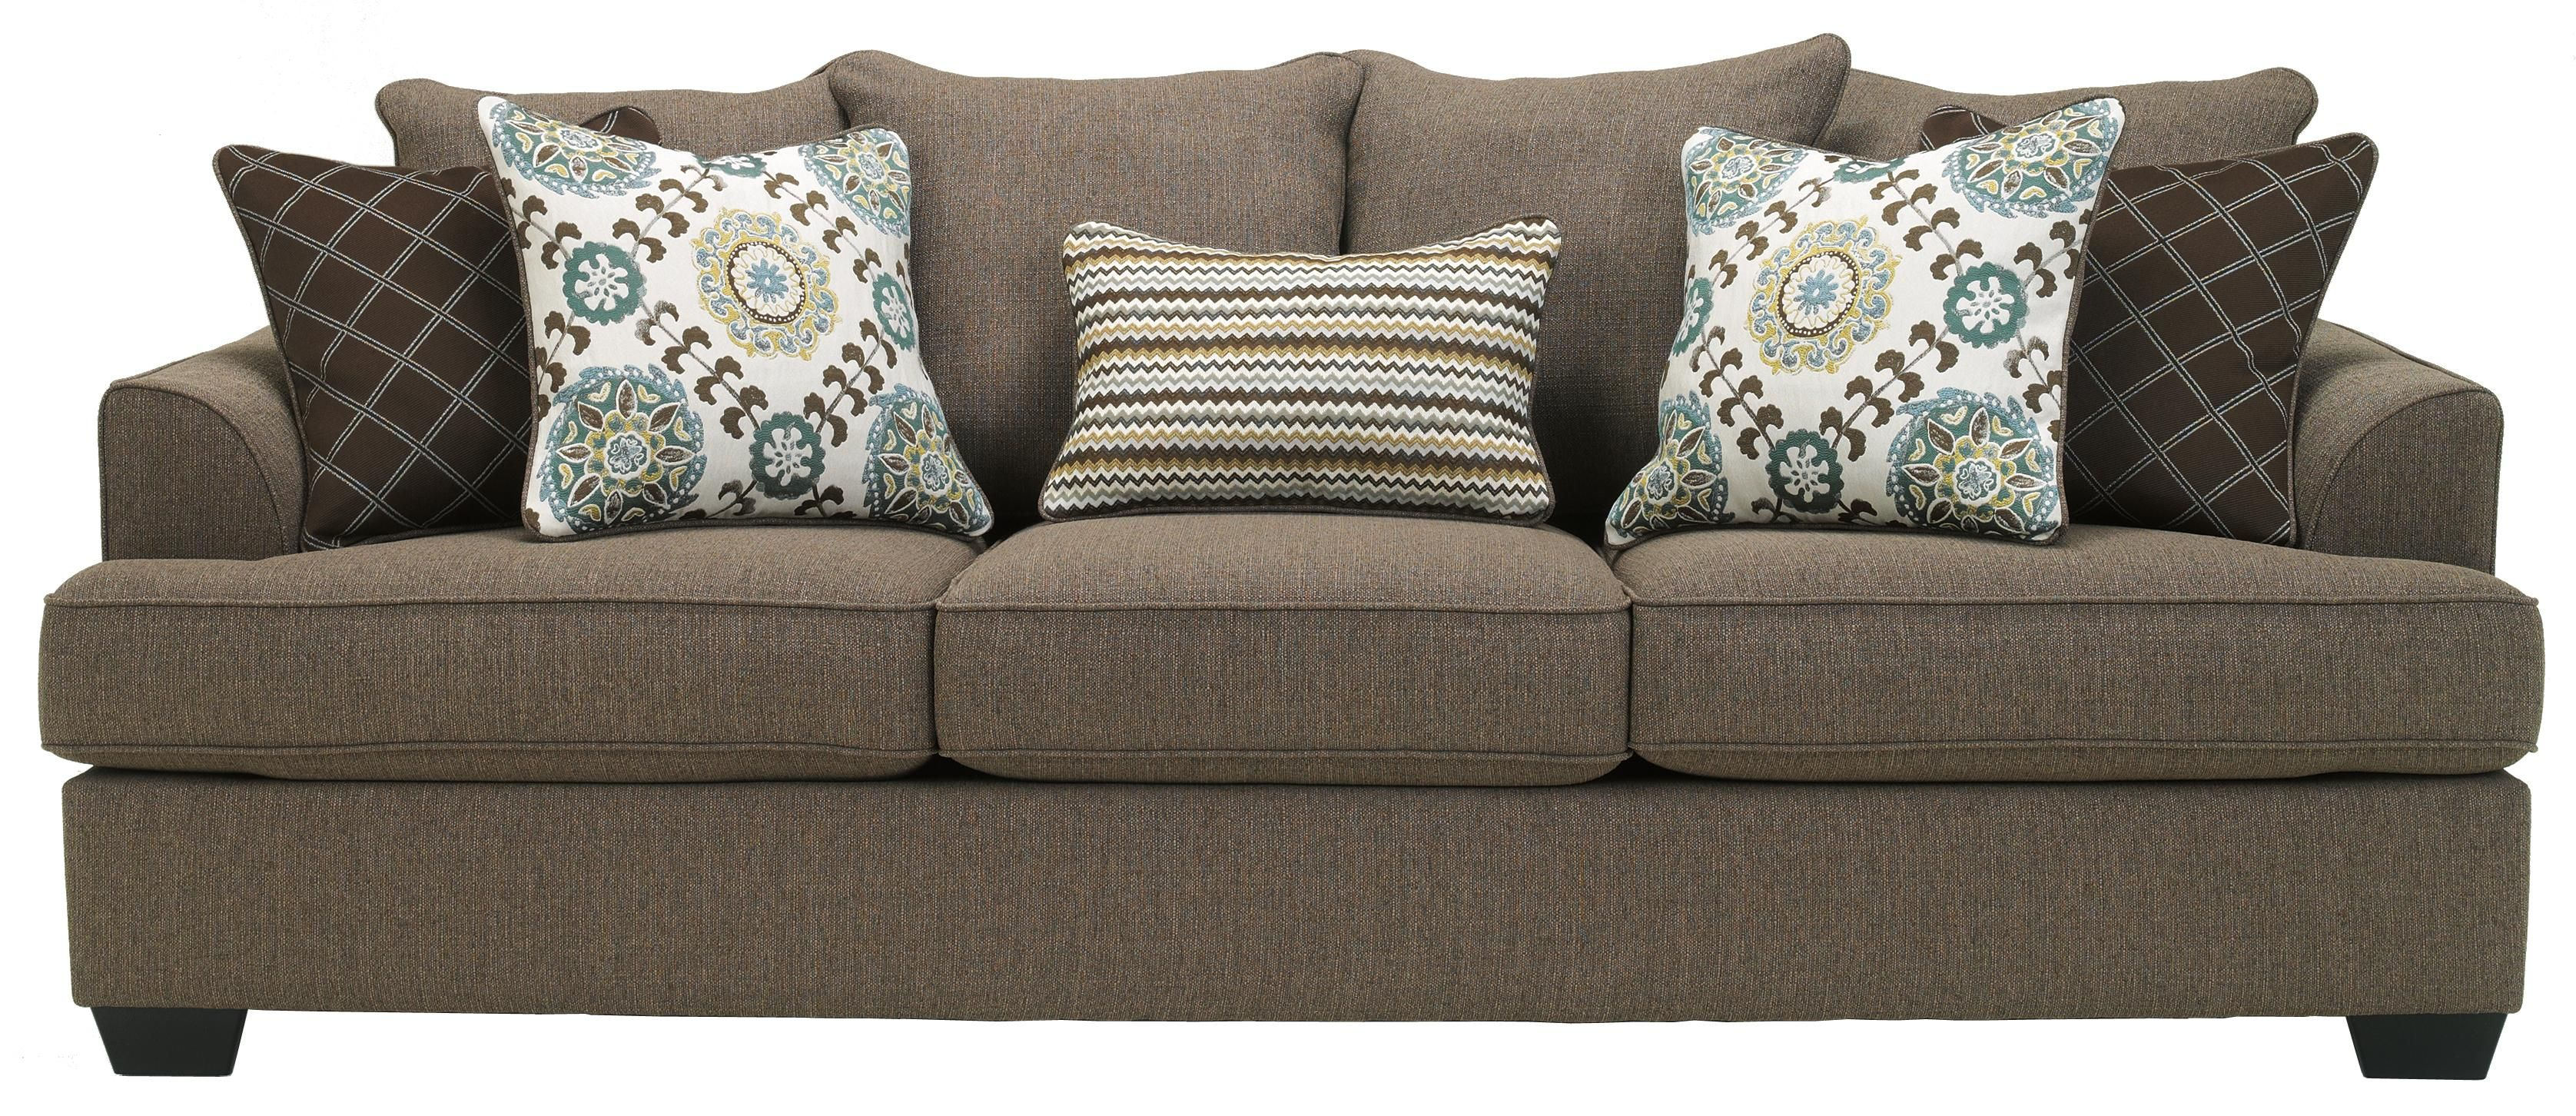 Corley Slate Sofa by Ashley Furniture Living Room